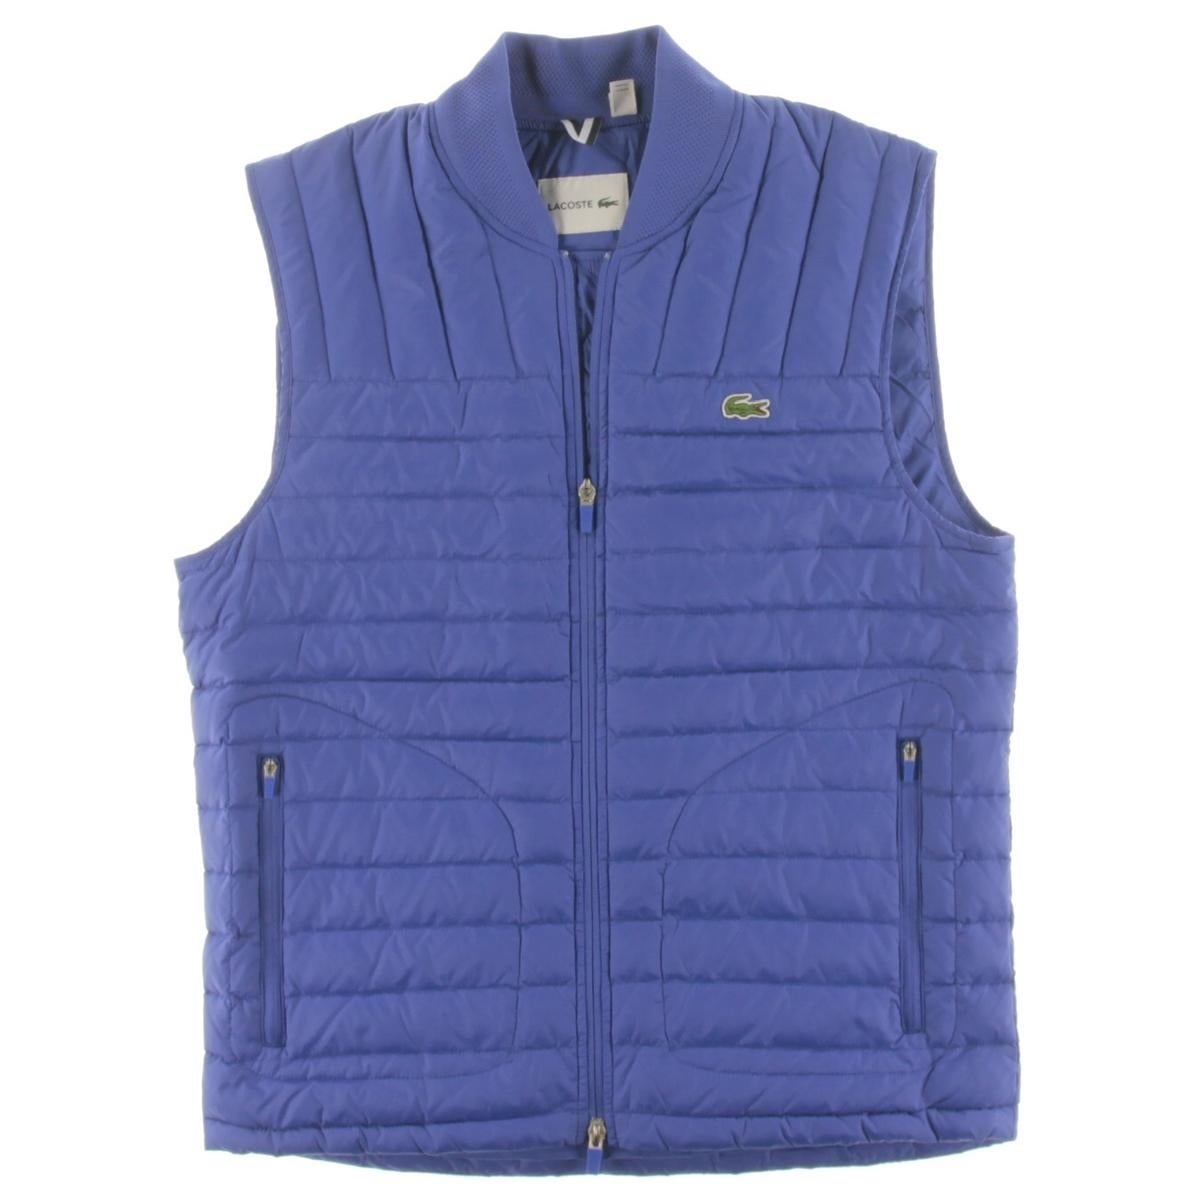 233c4e146727 Shop Lacoste Mens Outerwear Vest Ripstop Down - Free Shipping Today -  Overstock - 20751065